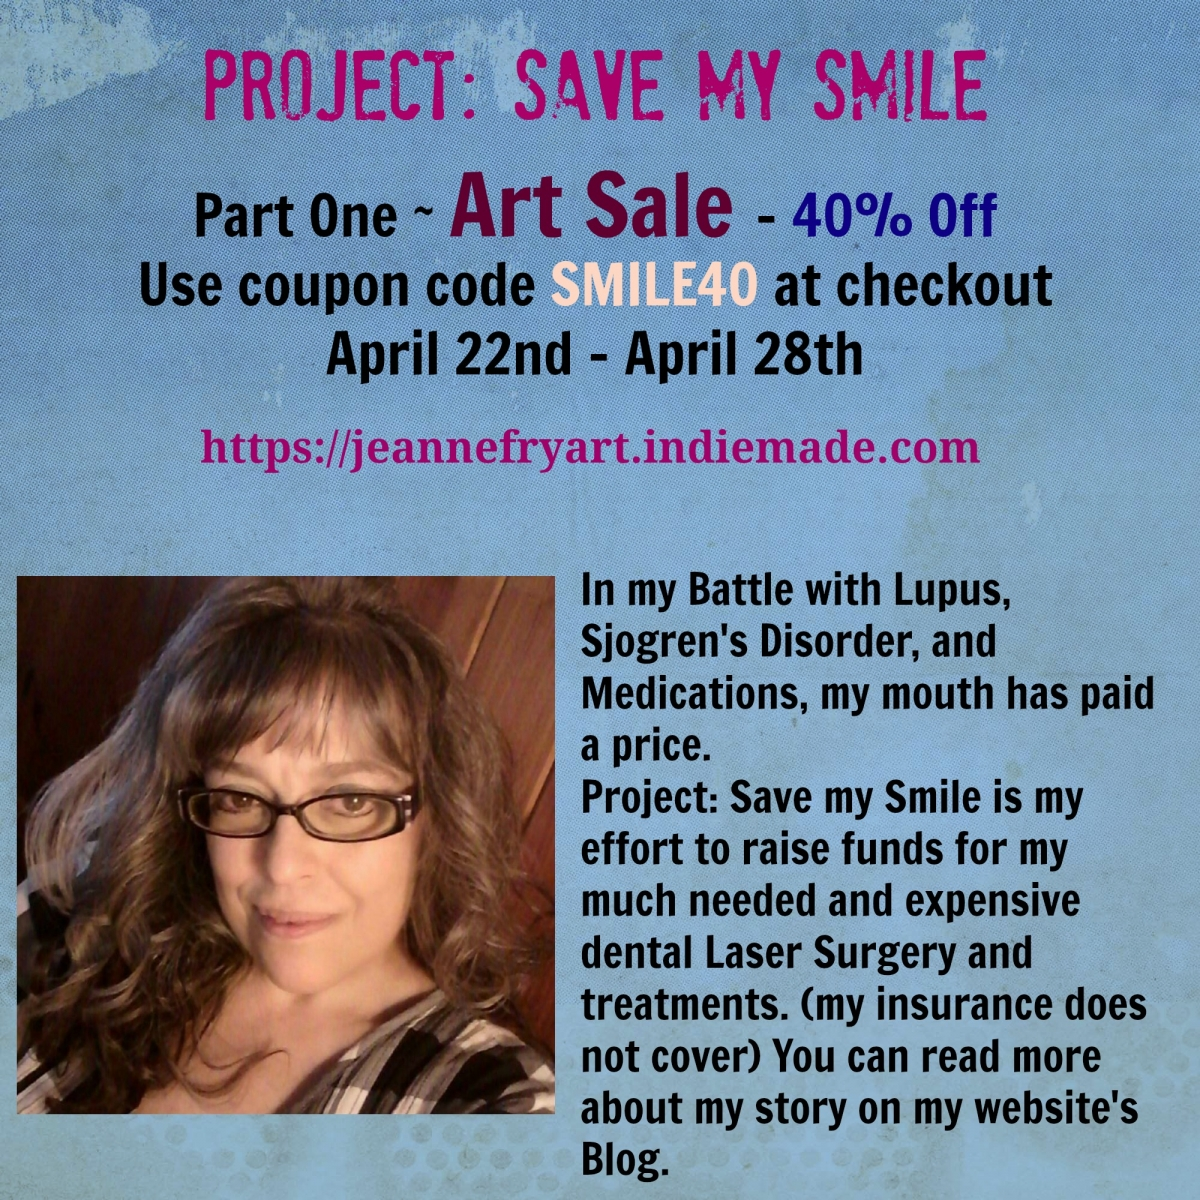 Save My Smile Art Sale - Jeanne Fry Art